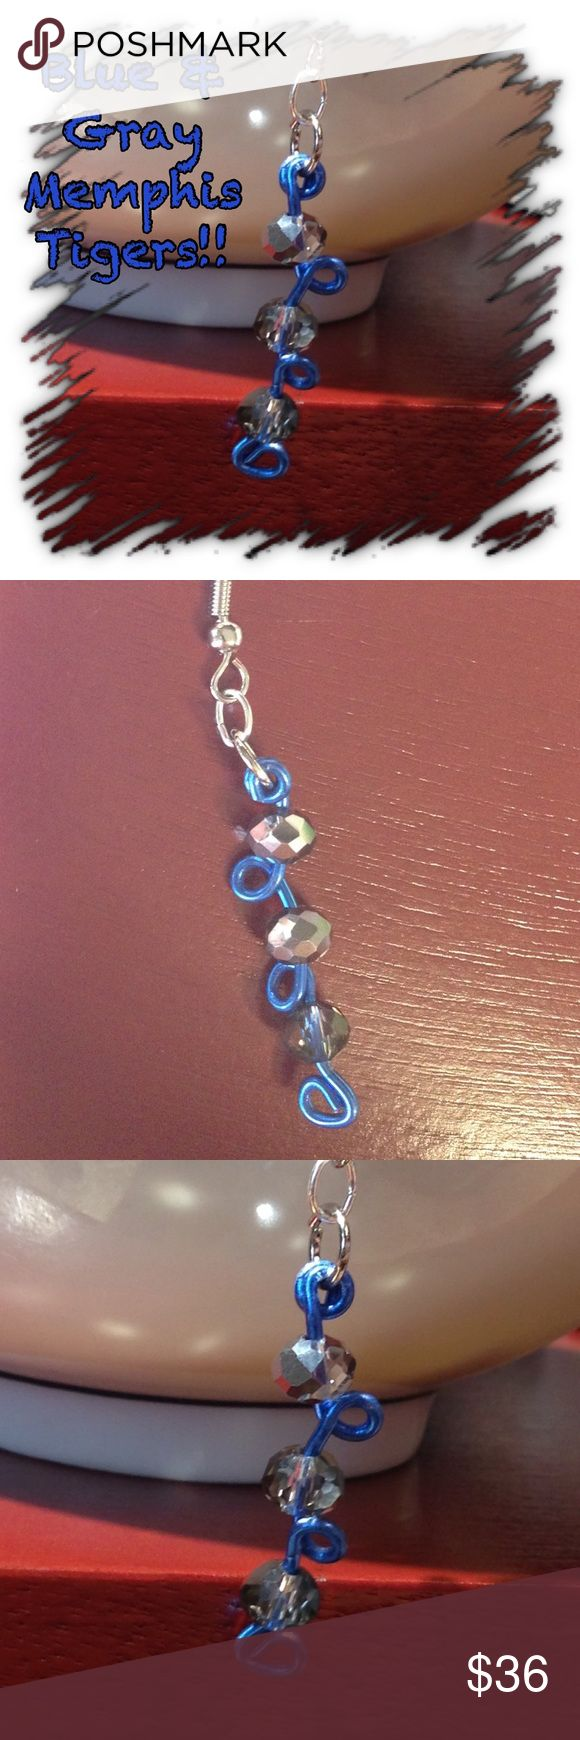 Custom college earrings tn memphis penn Duke lsu University of Memphis blue & gray earrings dangle. New and never used. University of Memphis blue wire wrapped with silver beads. This is handcrafted homemade with love and very unique. No one else will have this beautiful one of a kind jewelry. Long 2.75in earrings. Silver glass beads with silver earring hook attached. ❤️CUSTOMIZE NOW! Choose wire color and bead color! Just message me❤️ Jewelry Earrings